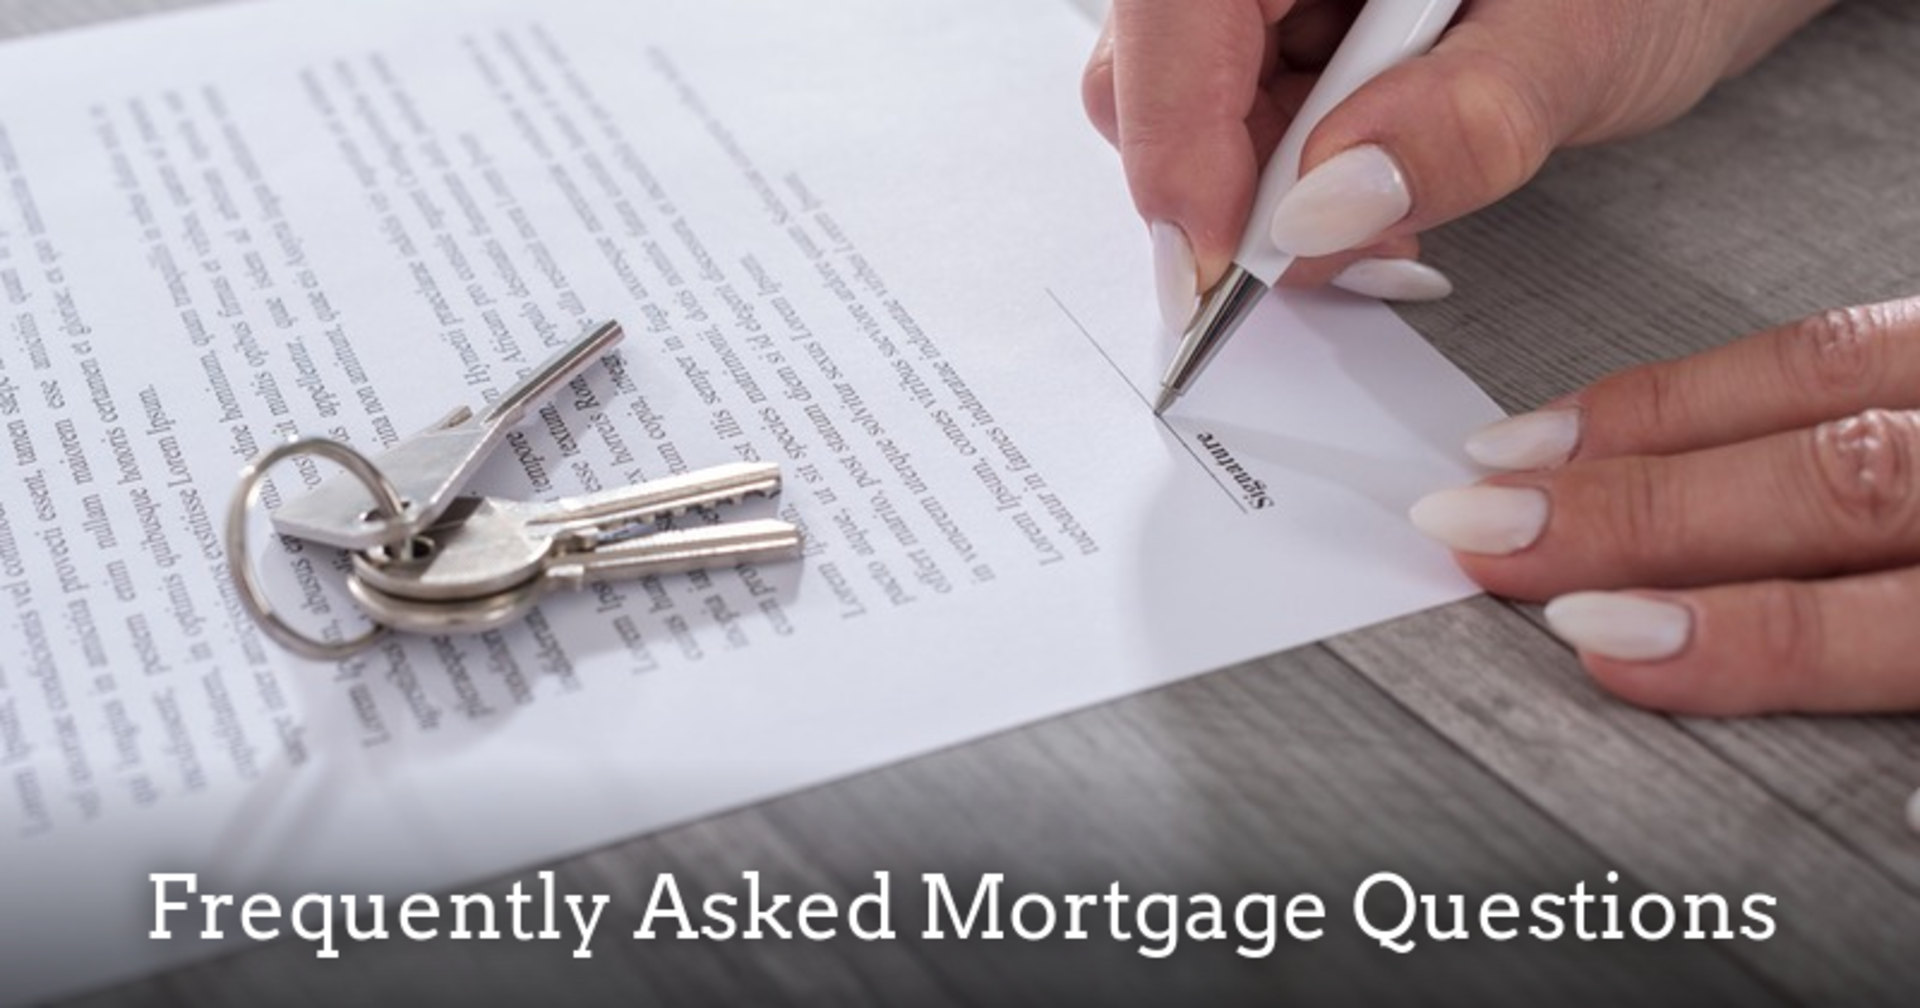 Your Mortgage Questions Answered